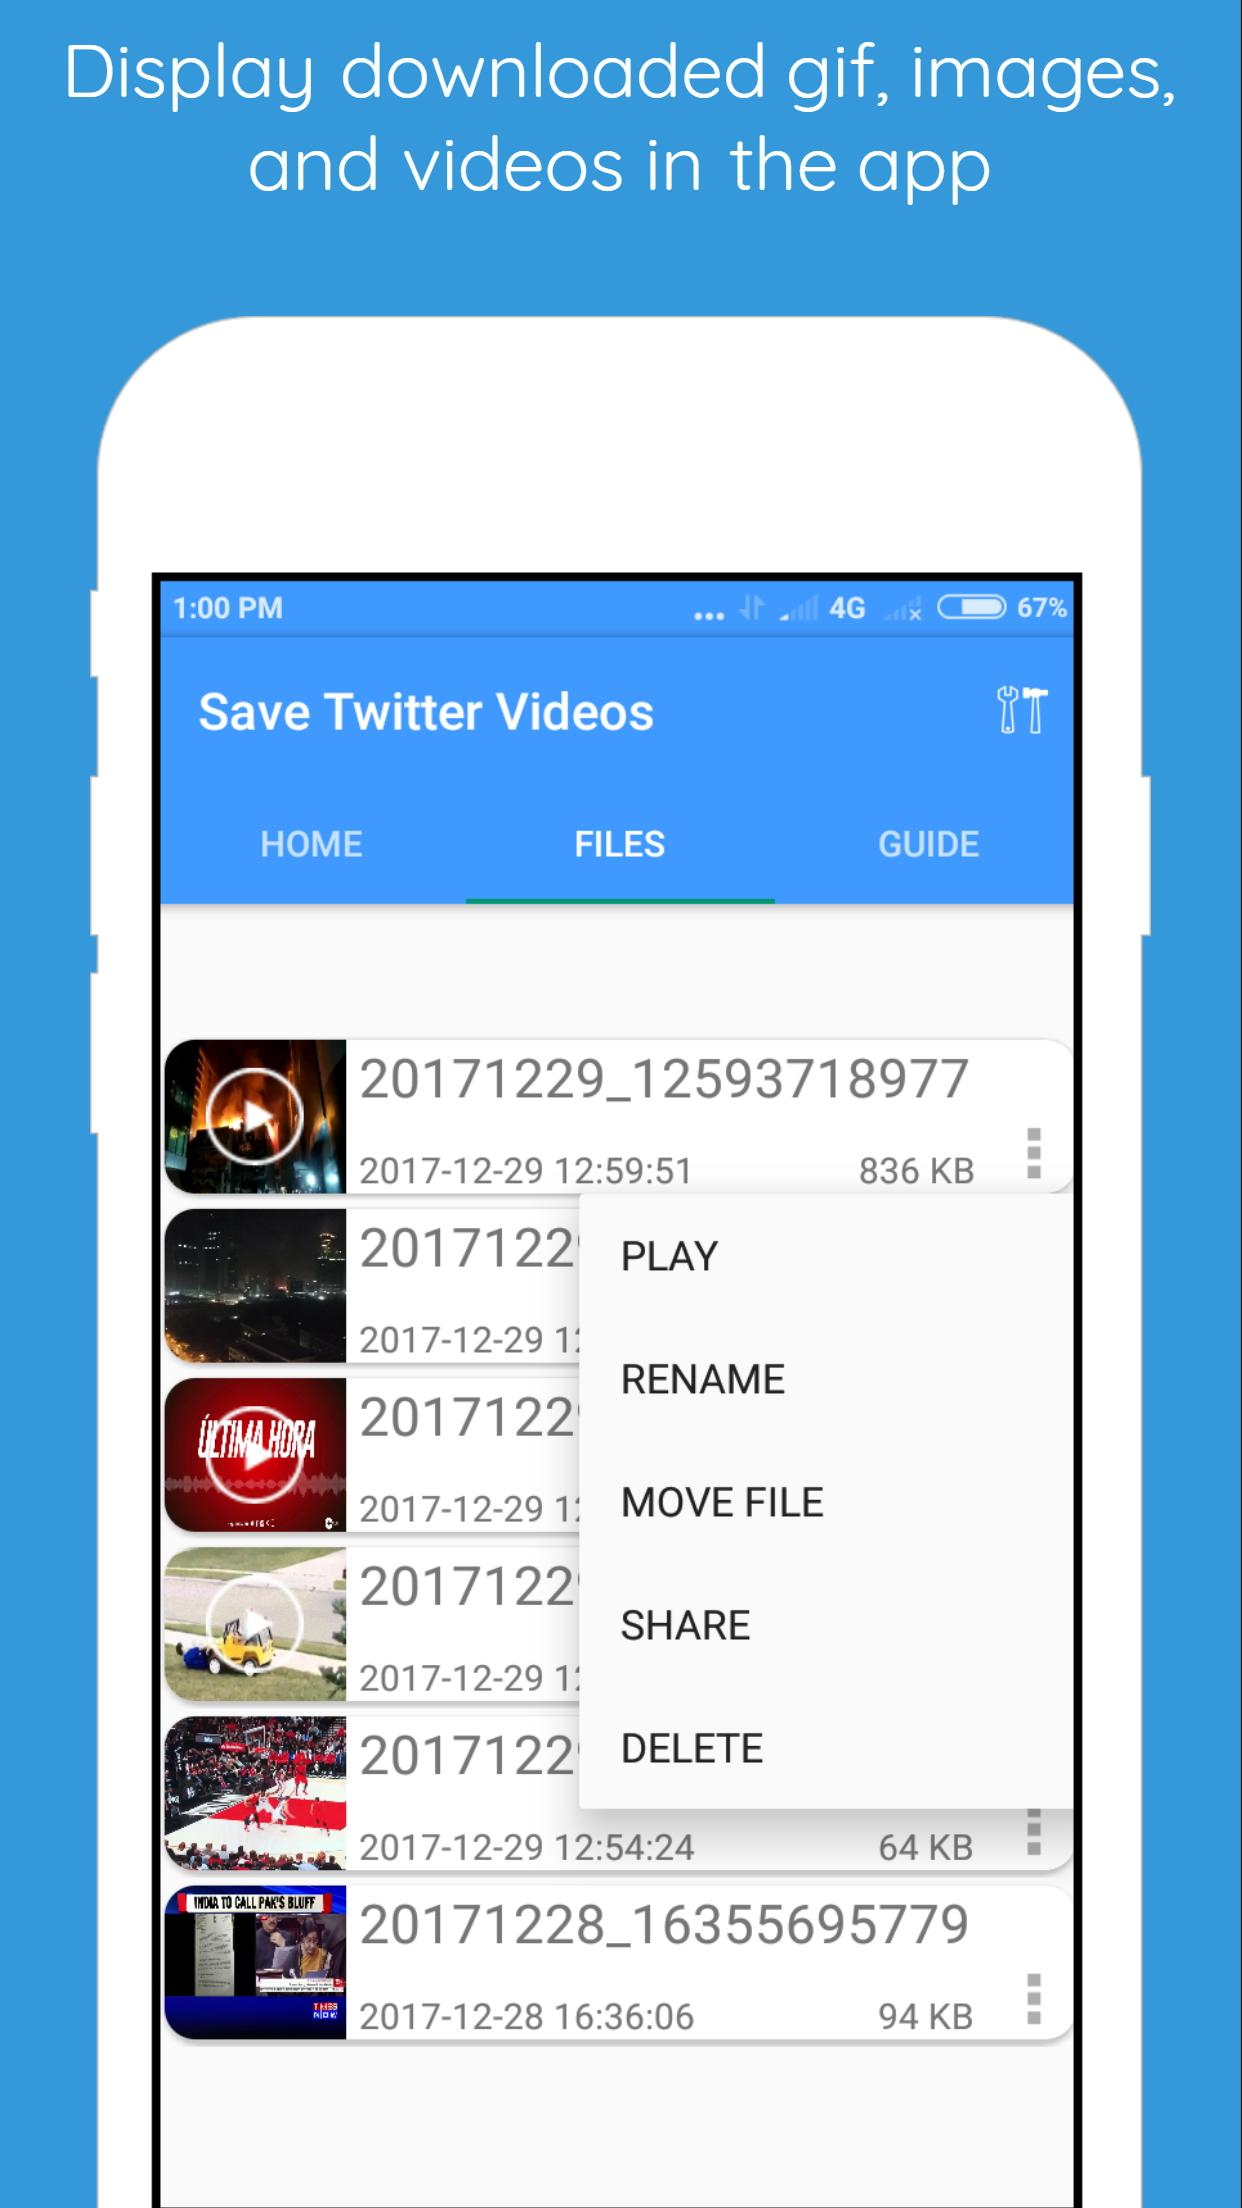 Save Twitter Videos Gifs And Images For Android Apk Download